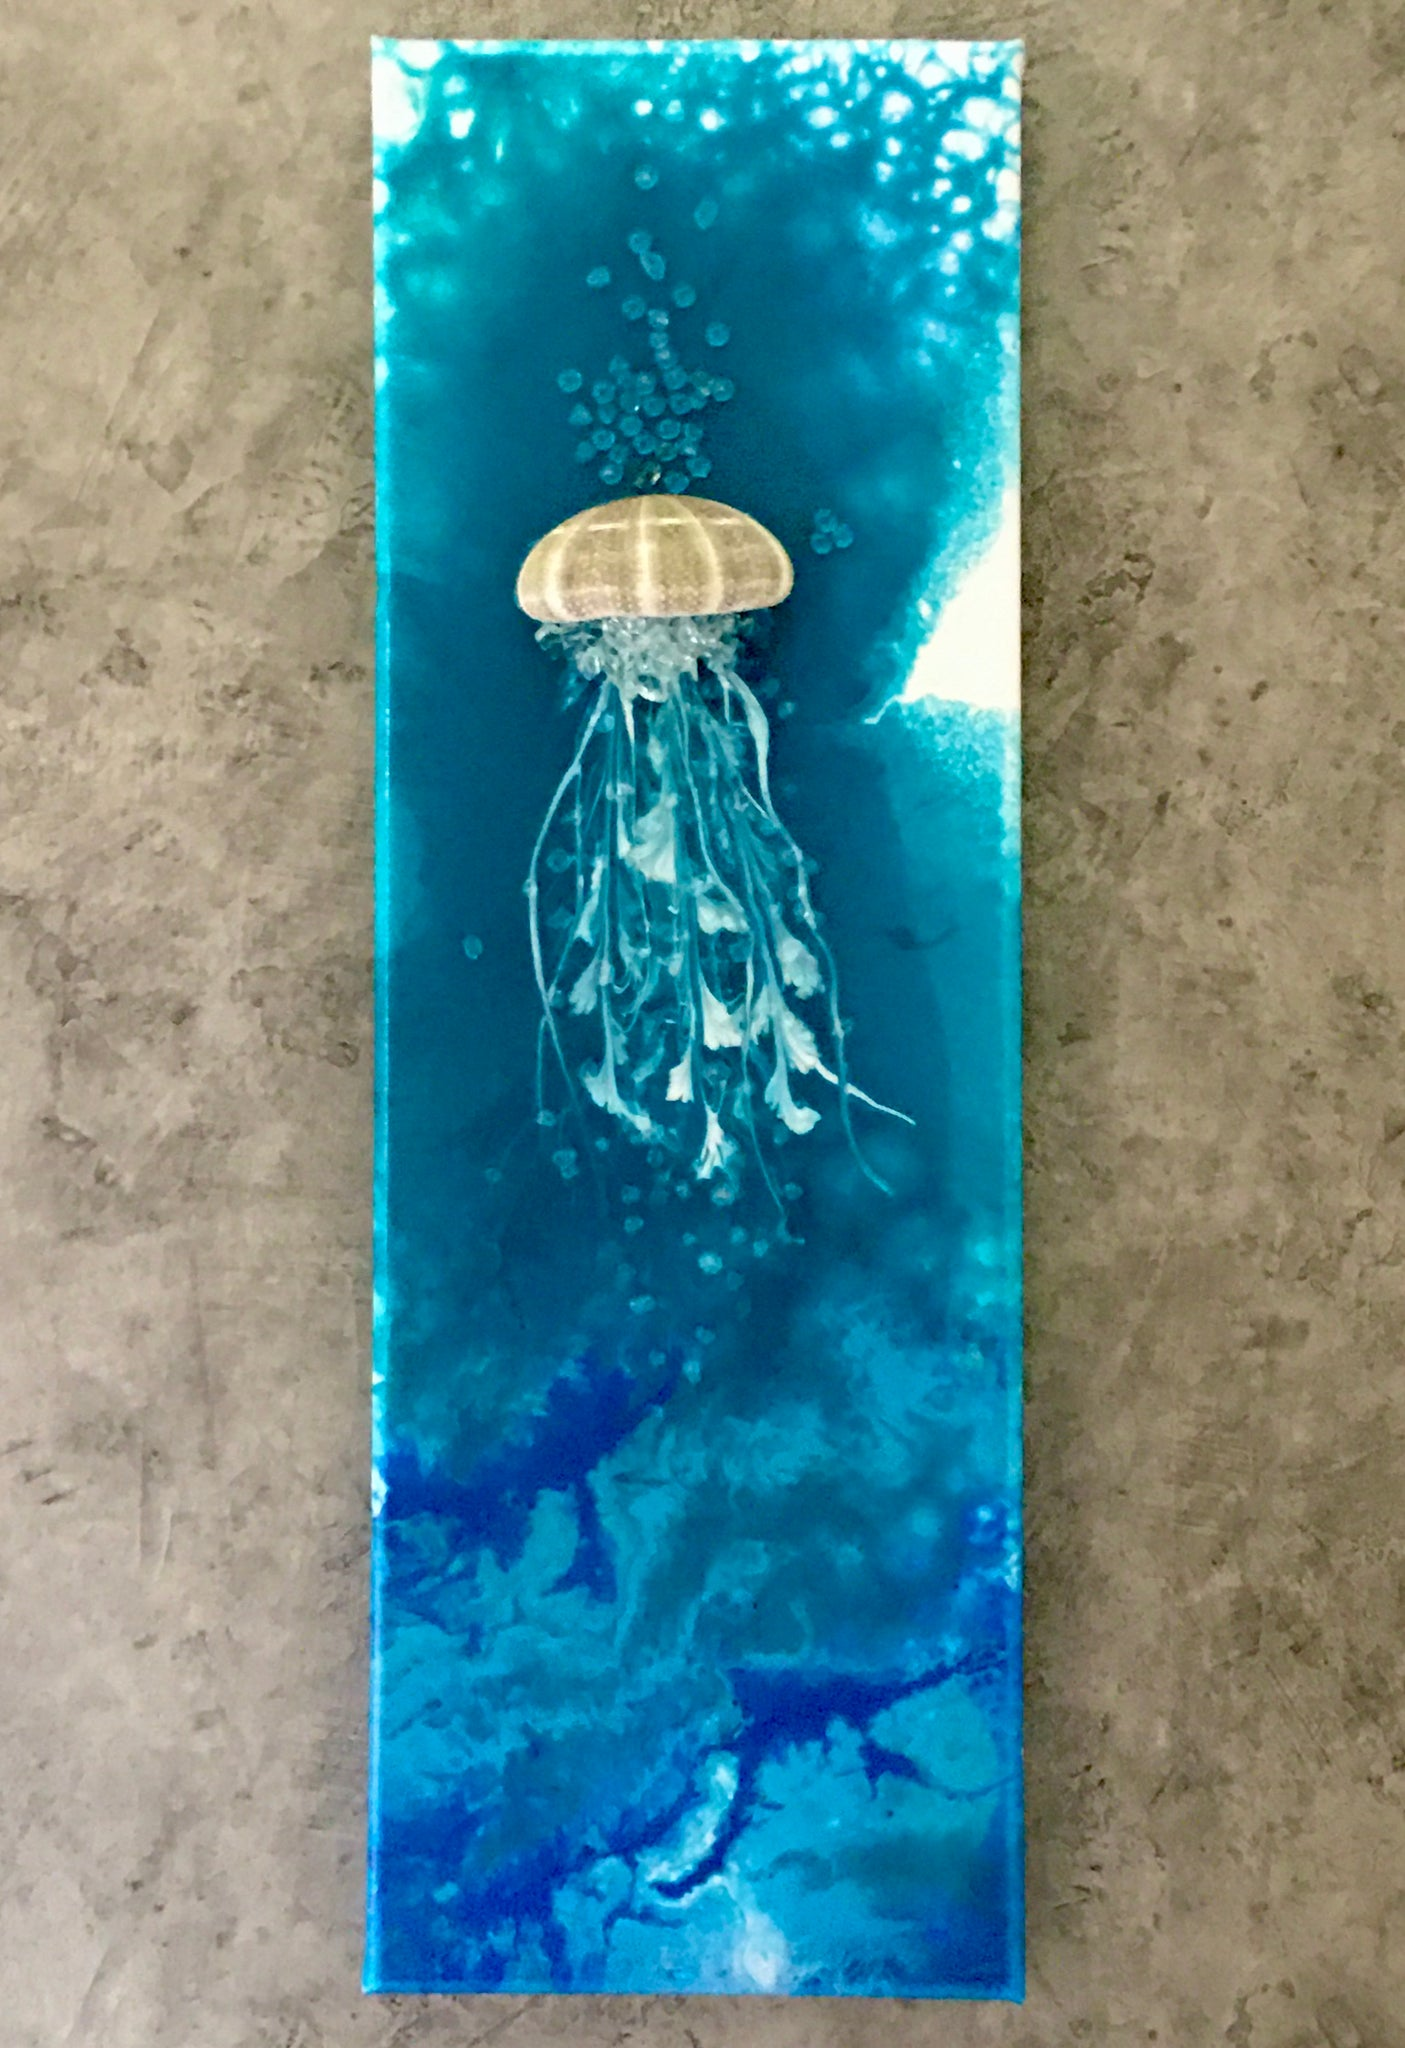 Acrylic Fluid Art Jelly Fish Beach Wall Decor